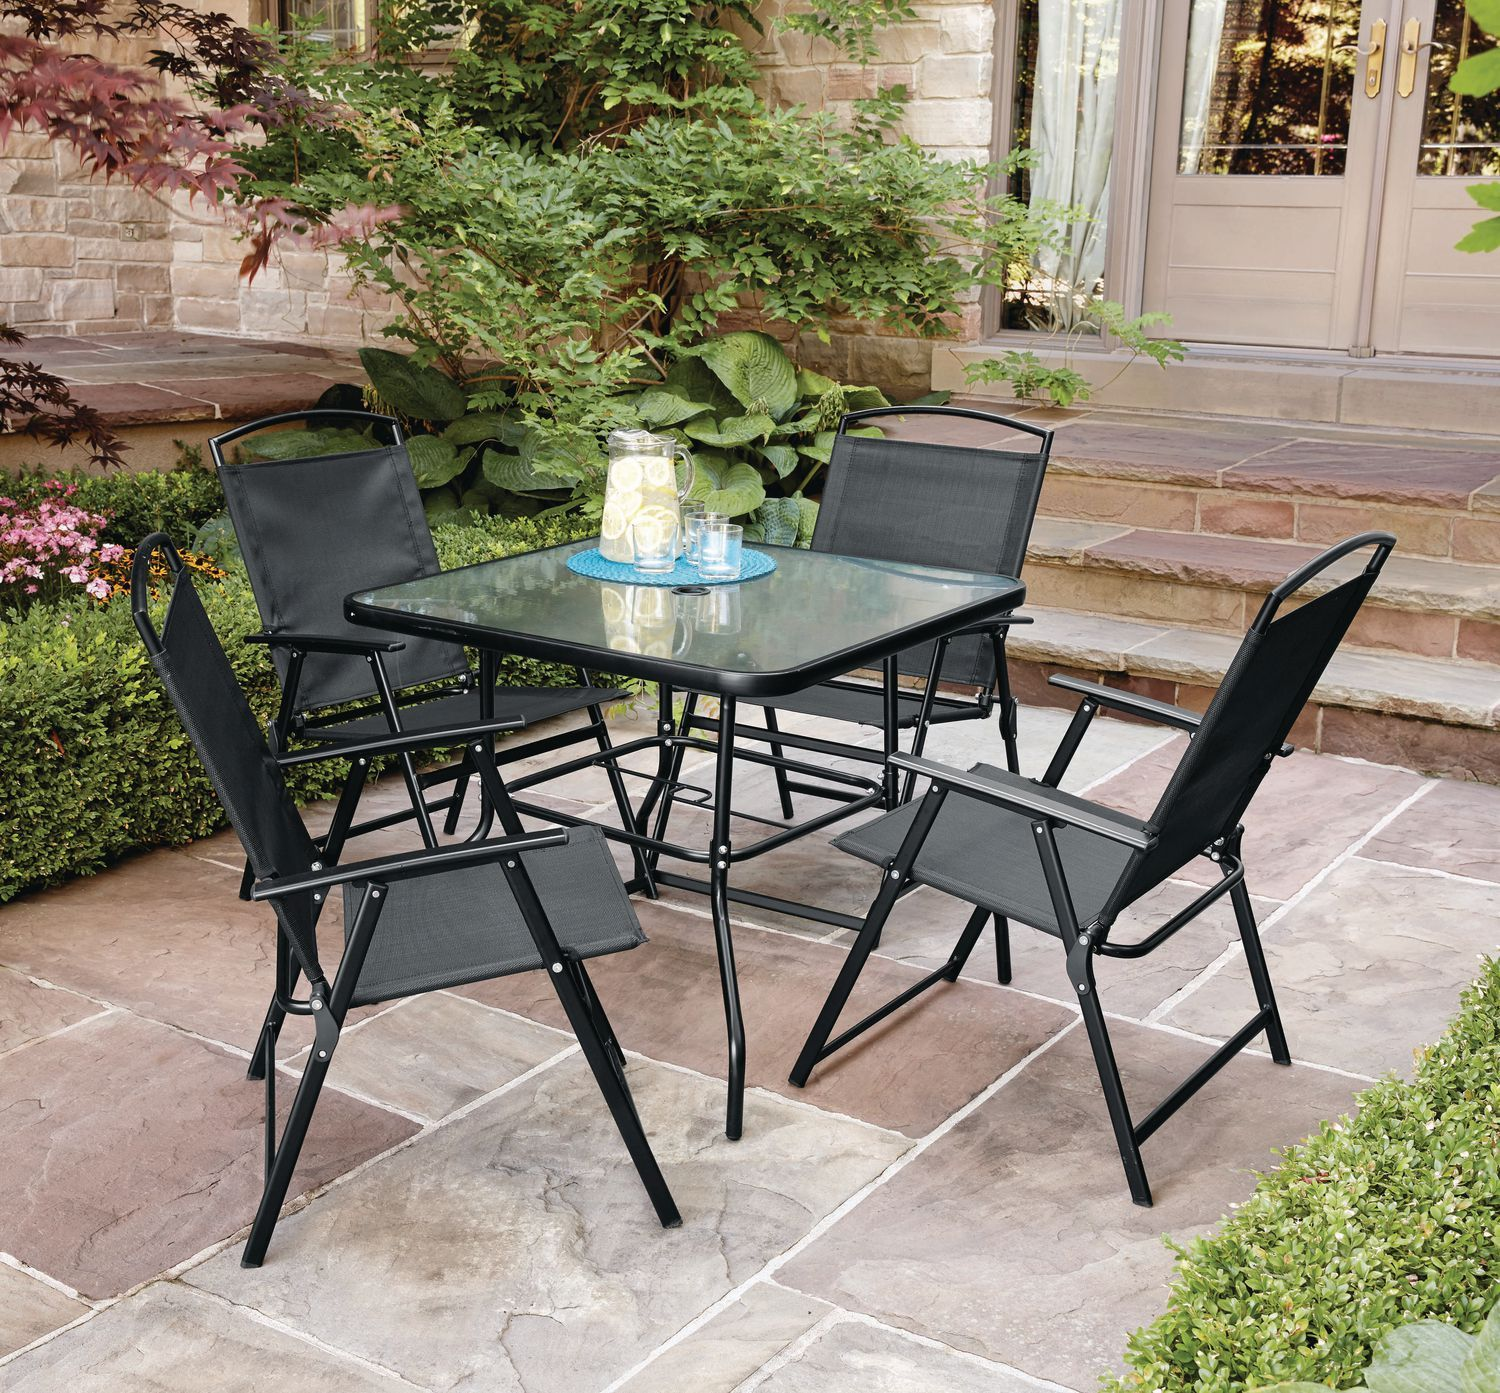 Glass Living Room Table Walmart In 2020 Patio Dining Table Patio Table Set Patio